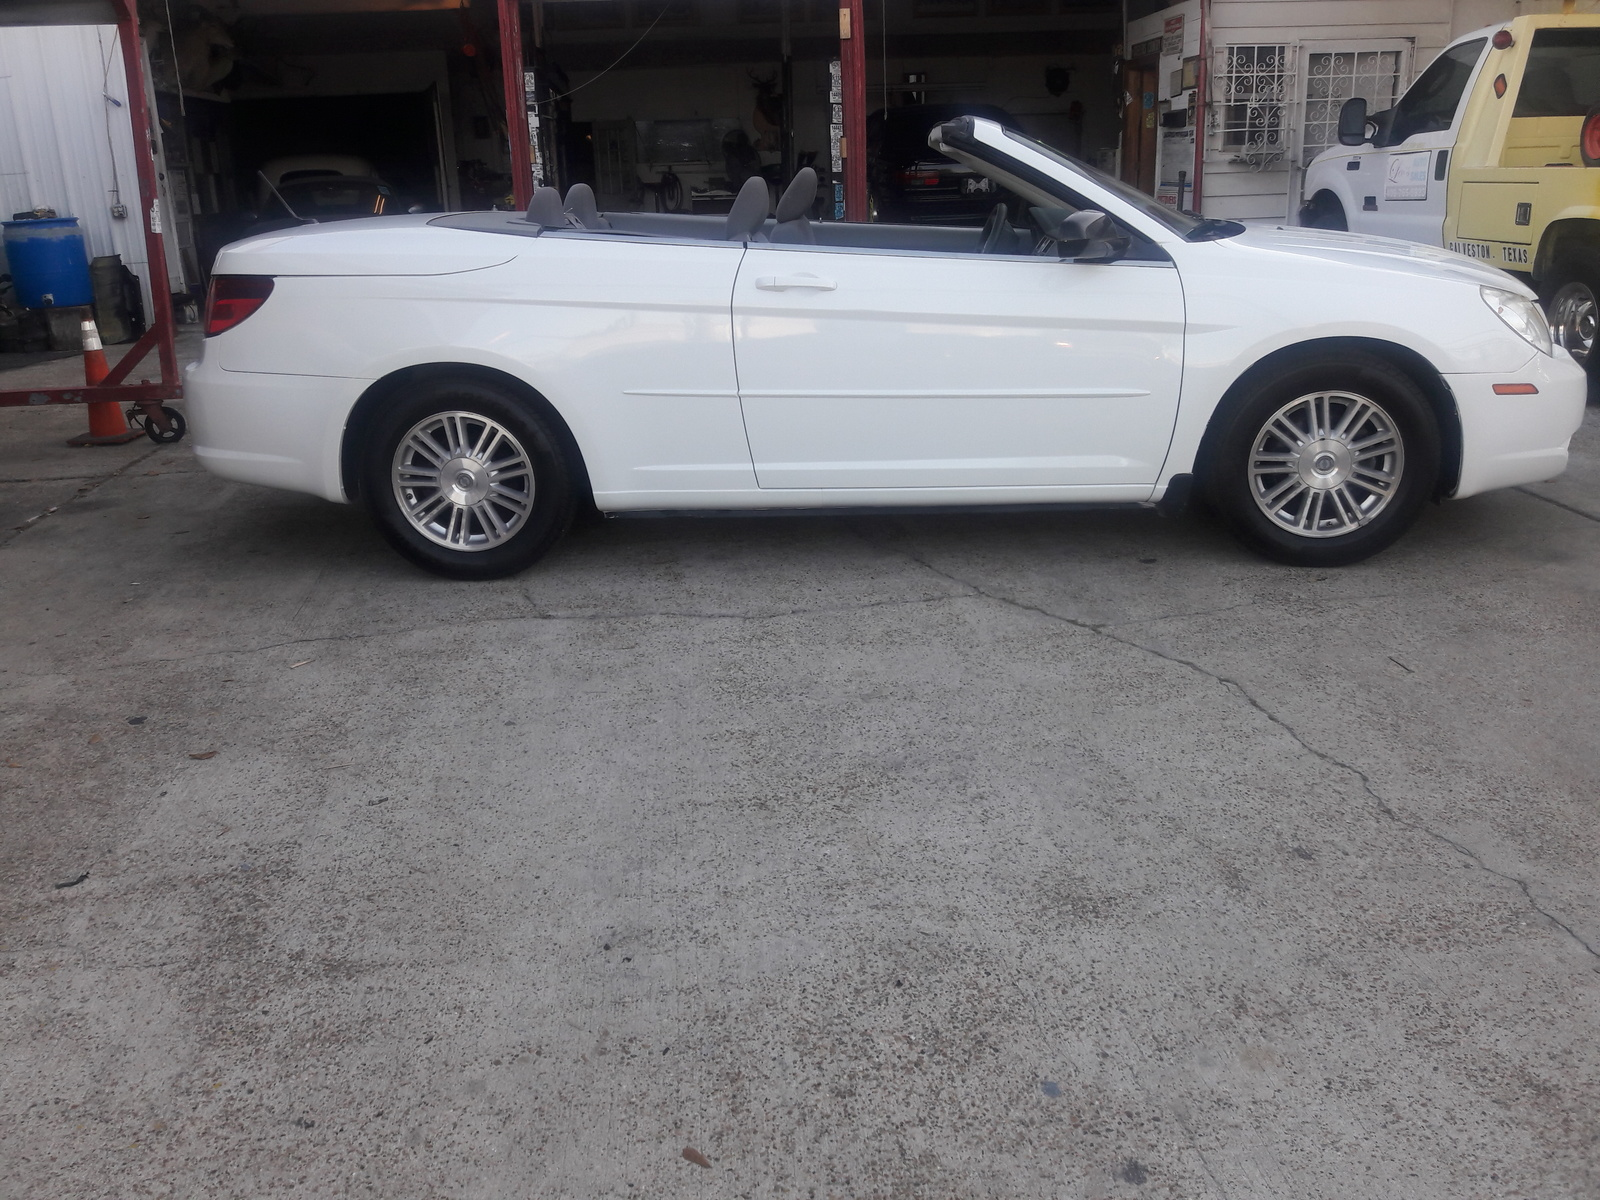 chrysler sebring questions convertible top and drivers side window cargurus. Black Bedroom Furniture Sets. Home Design Ideas